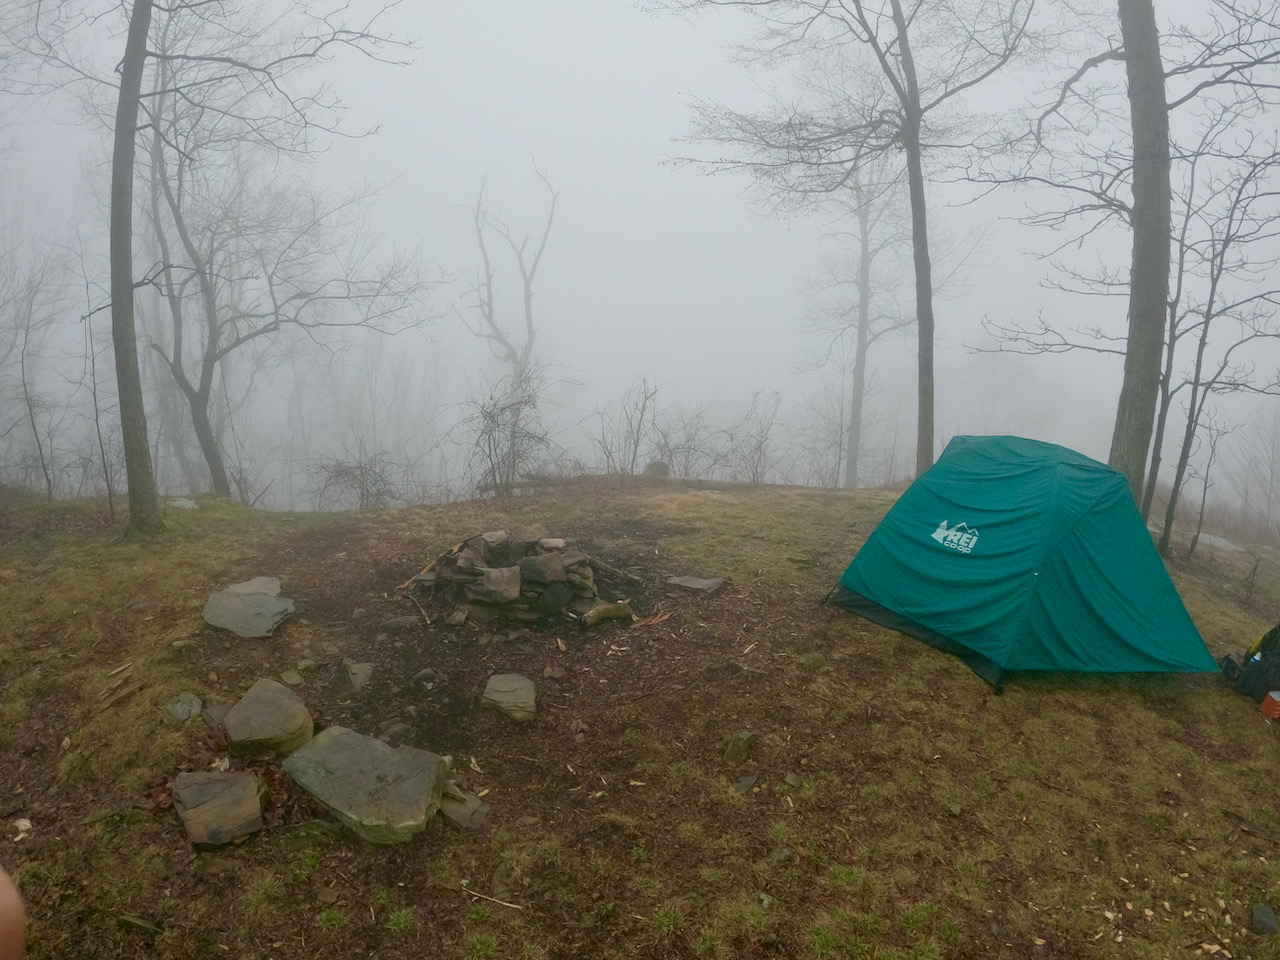 Photo of a primitive fire ring and tent surrounded by fog